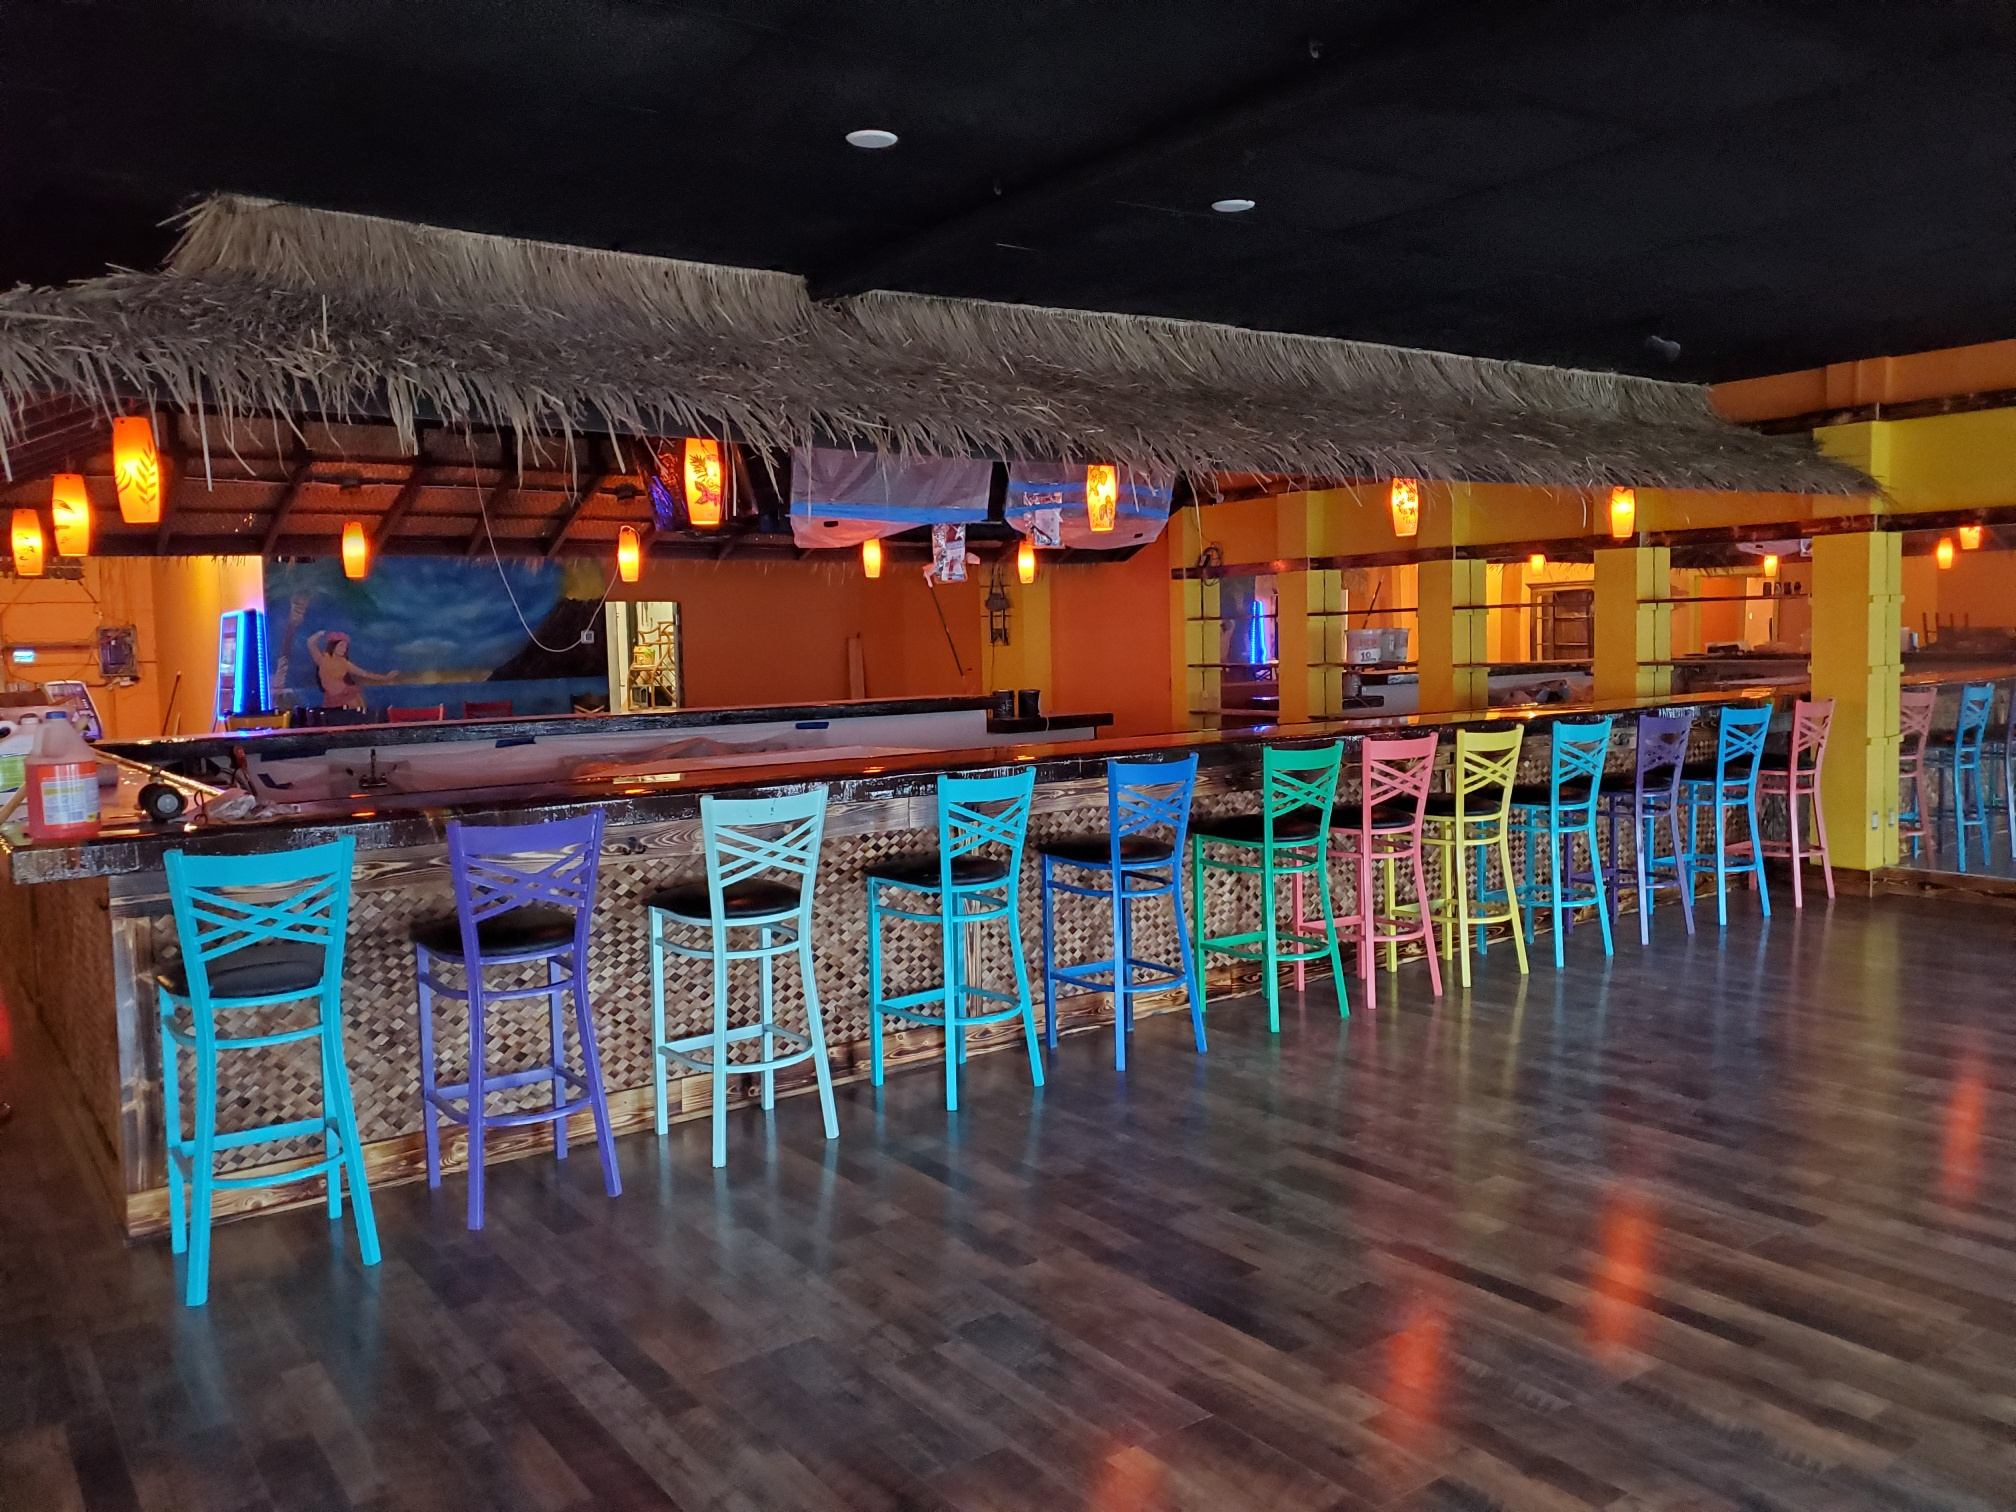 Indoor bar with thatched roof and multicolored bar chairs.